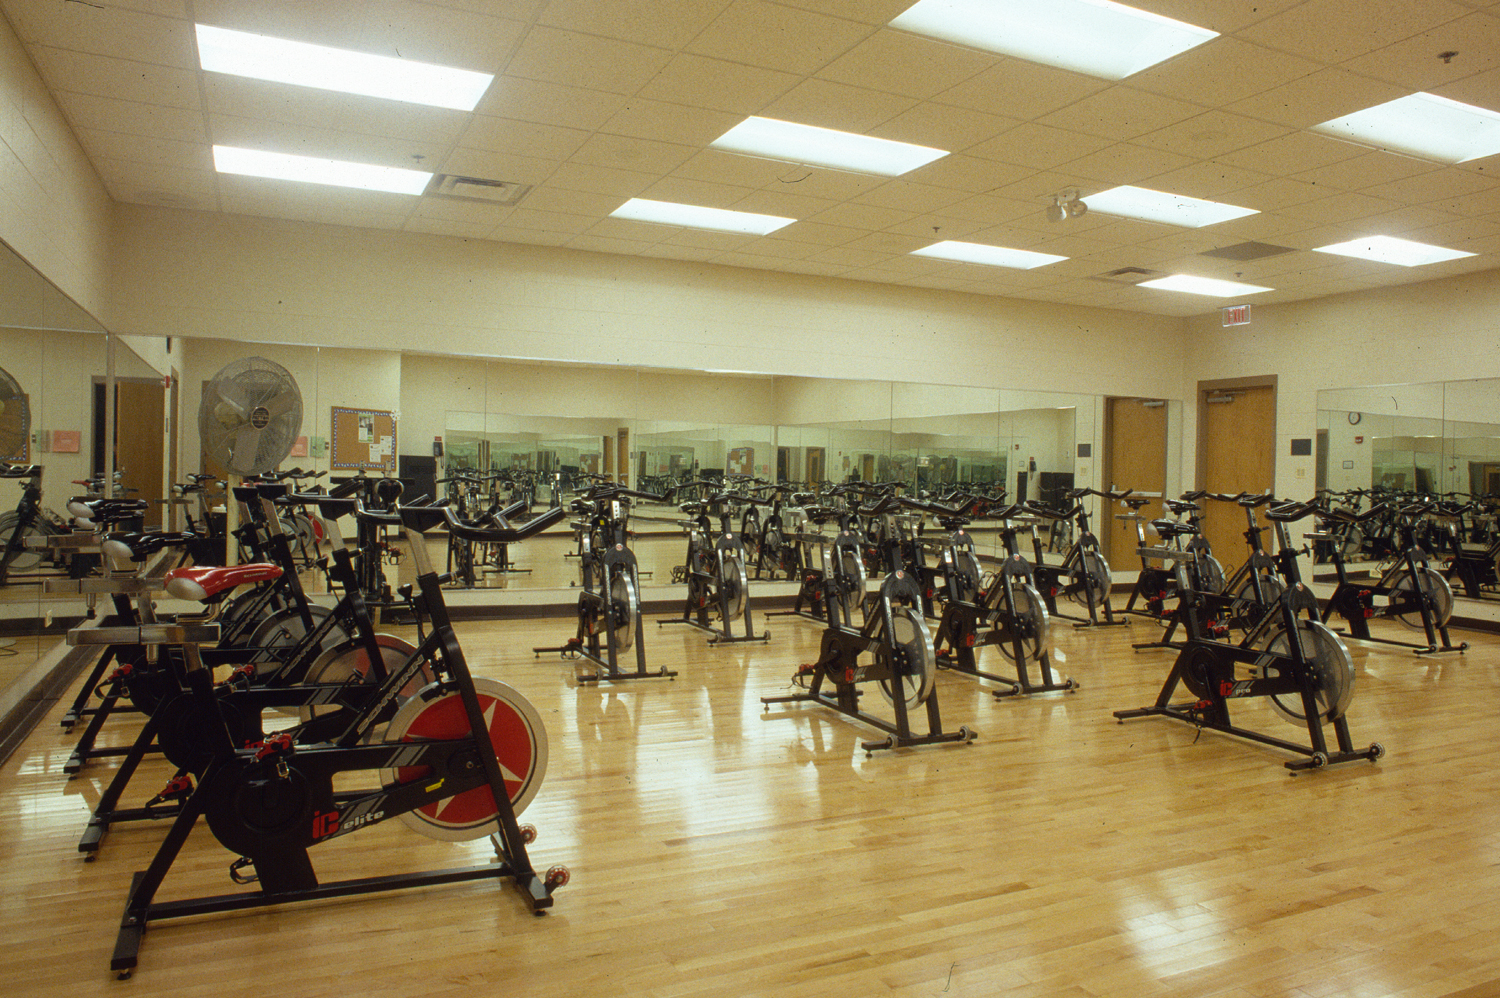 2000-046-45 Downers Grove Rec Center Fitness Room.jpg